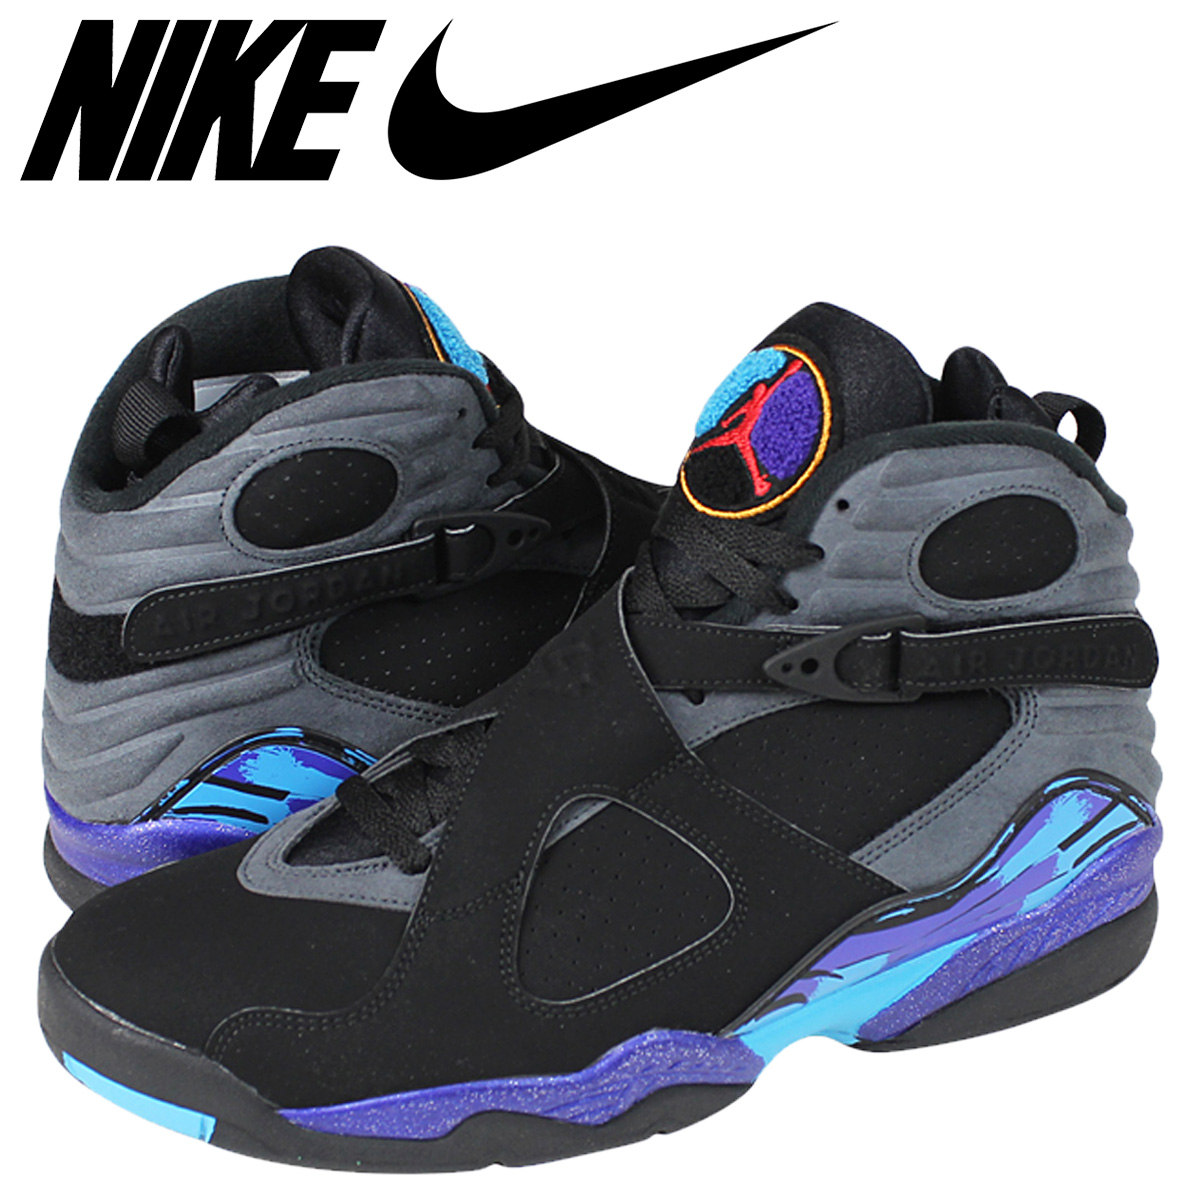 ef975fee62a ... uk cheapest nike nike air jordan sneakers air jordan 8 retro aqua air  jordan retro 8